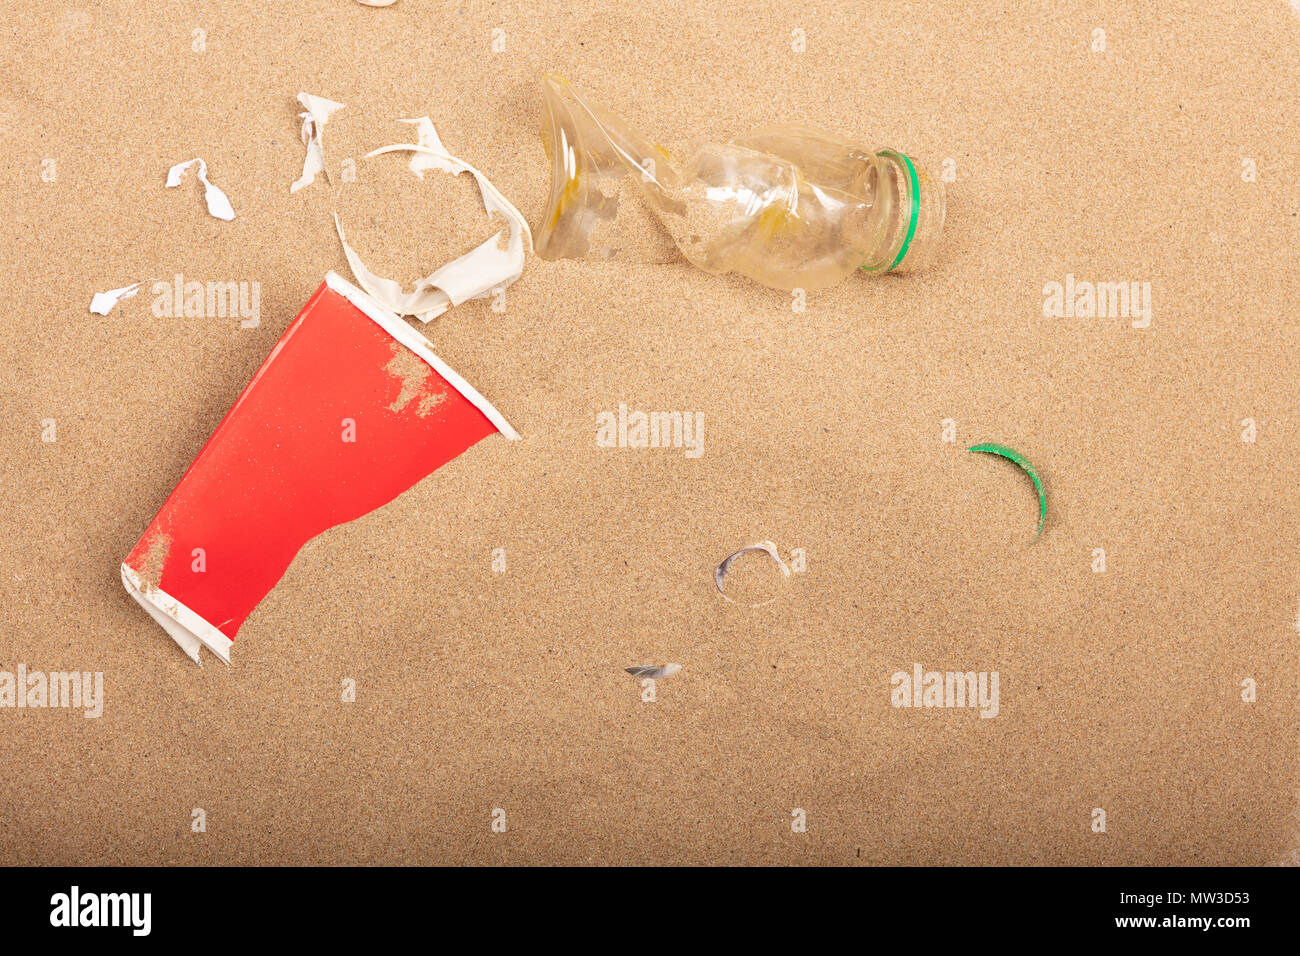 Waste plastic bottles and other types of wastes are lying on the sand of  a beach - Stock Image